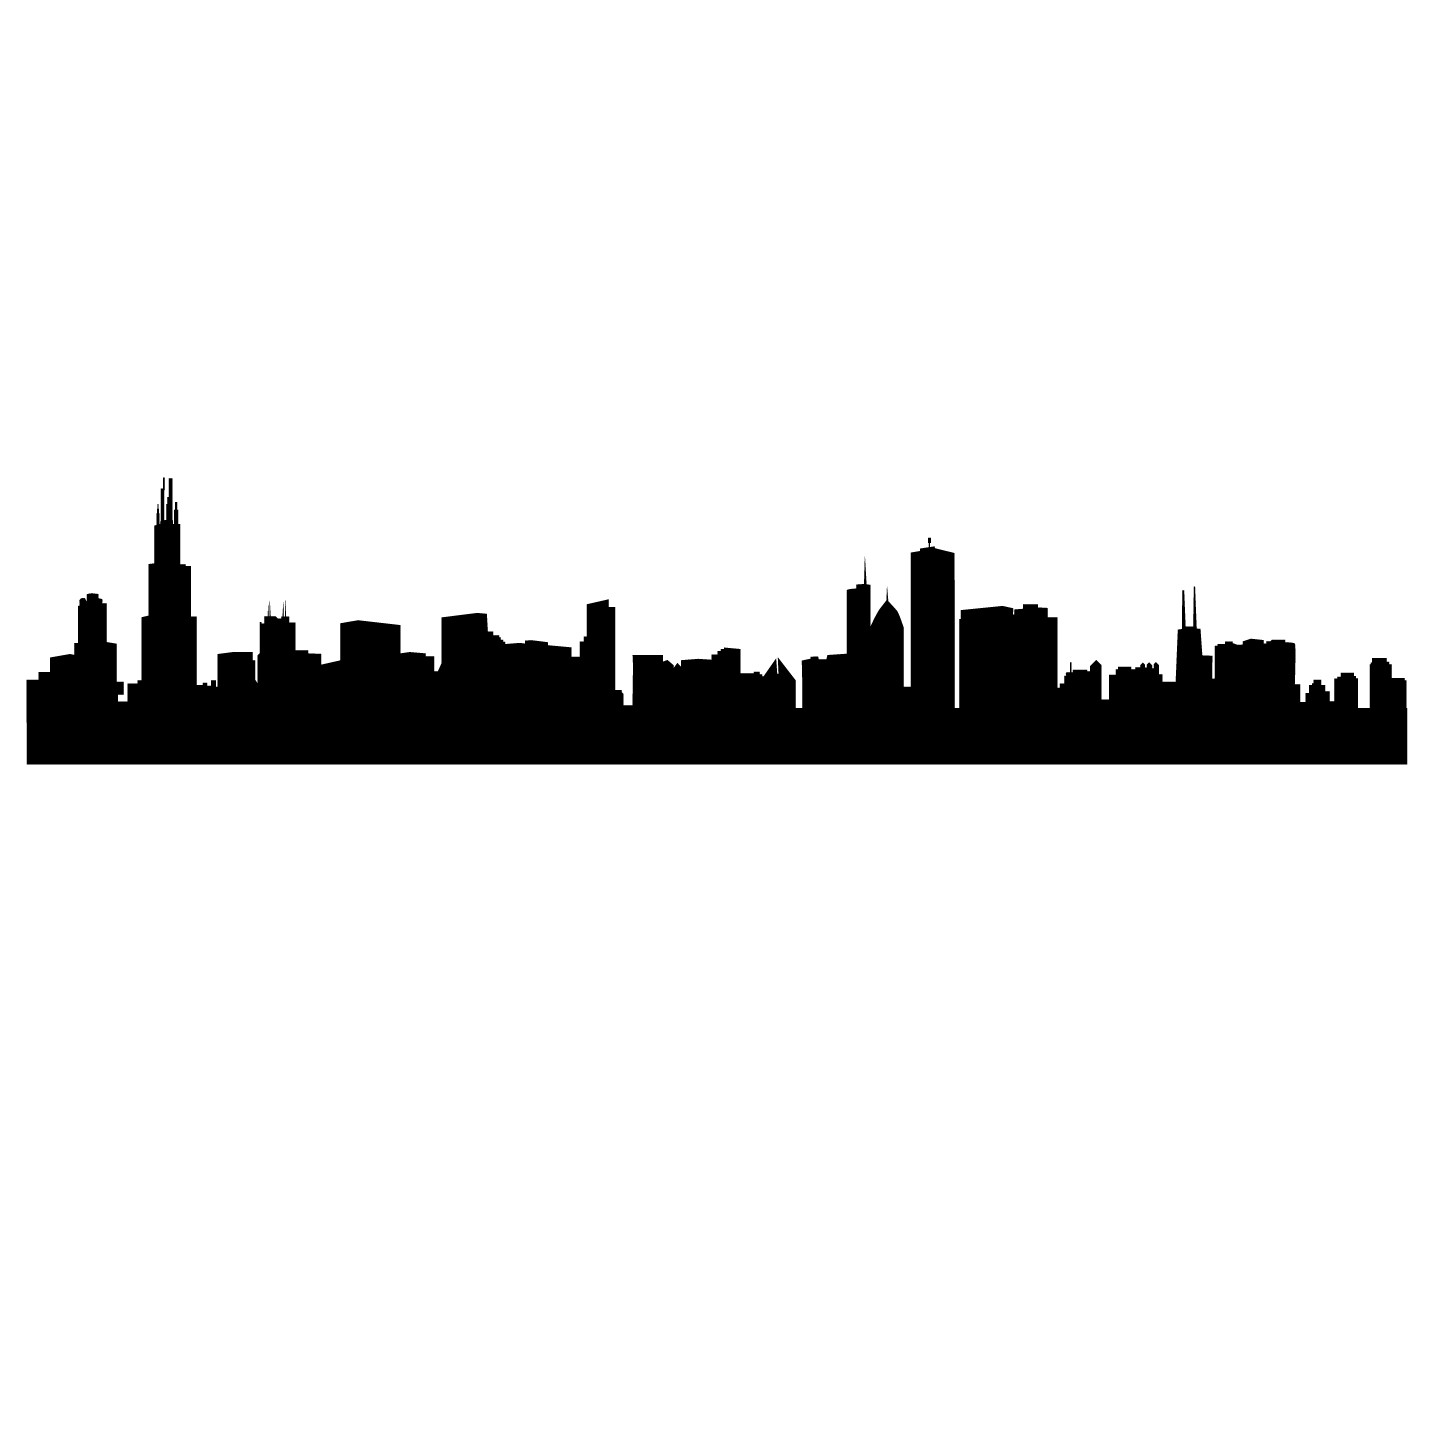 Skyline 20clipart | Clipart Panda - Free Clipart Images